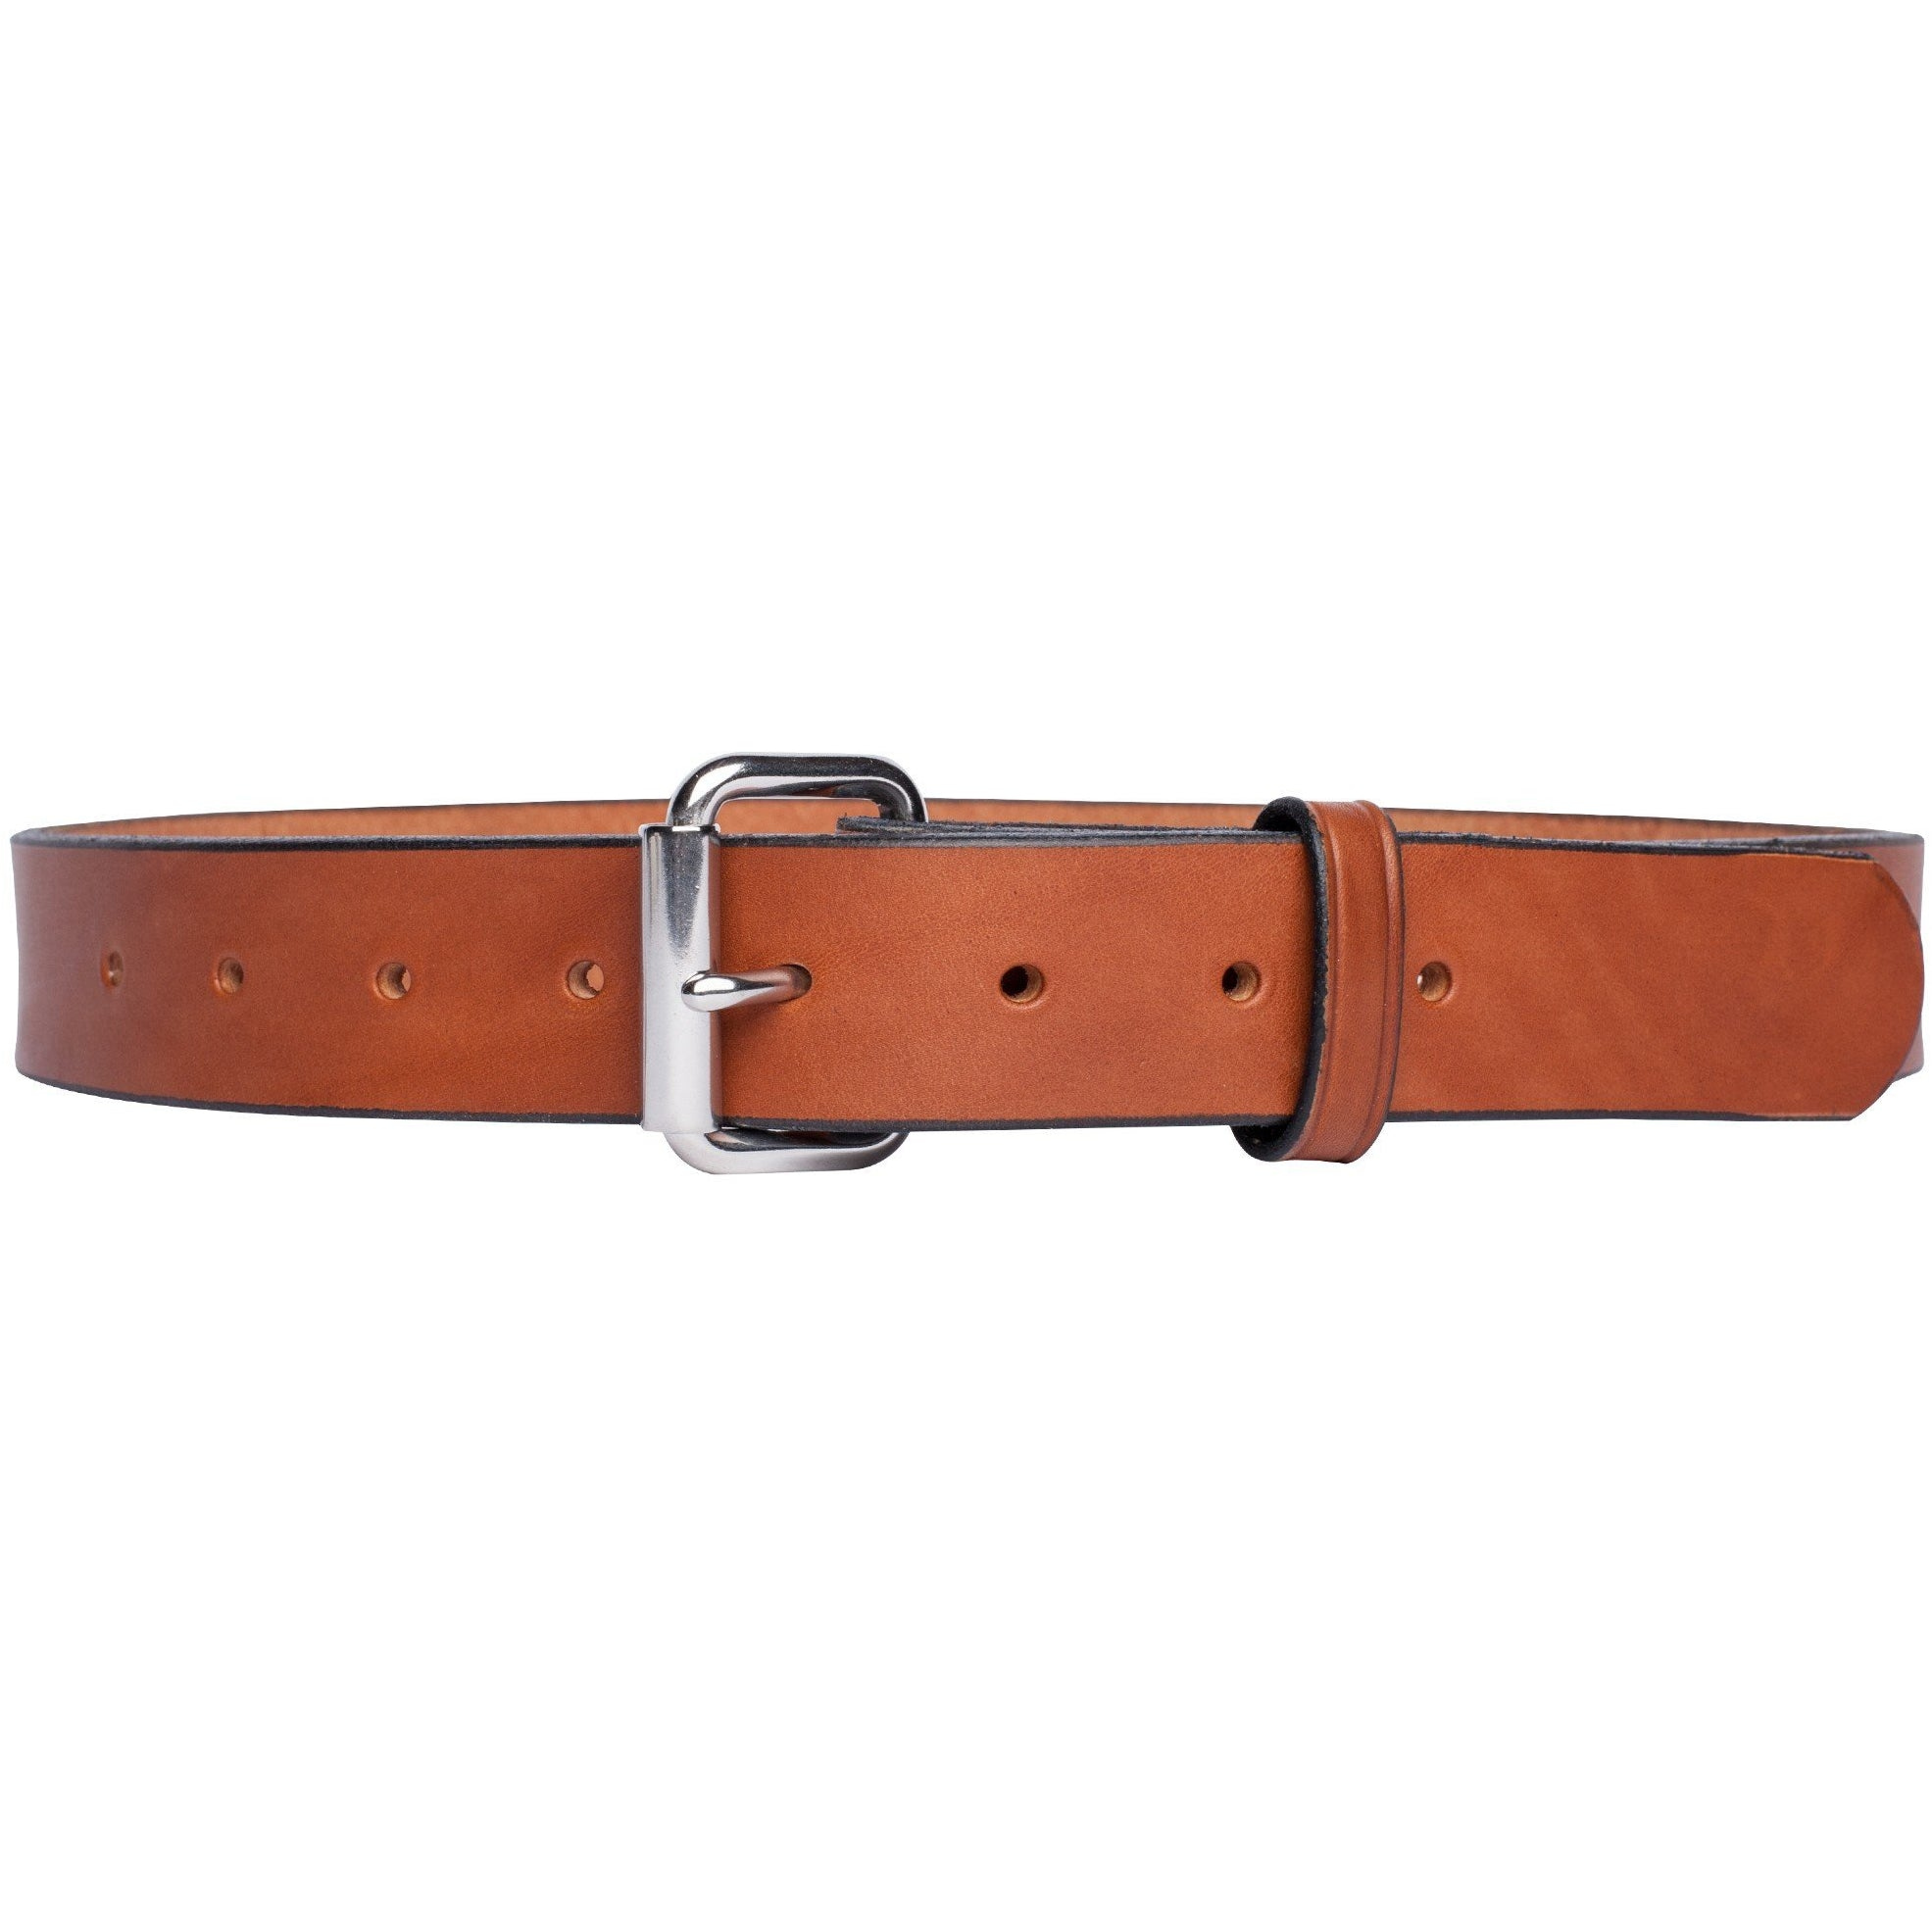 American Made Leather Belt - OnwardReserve